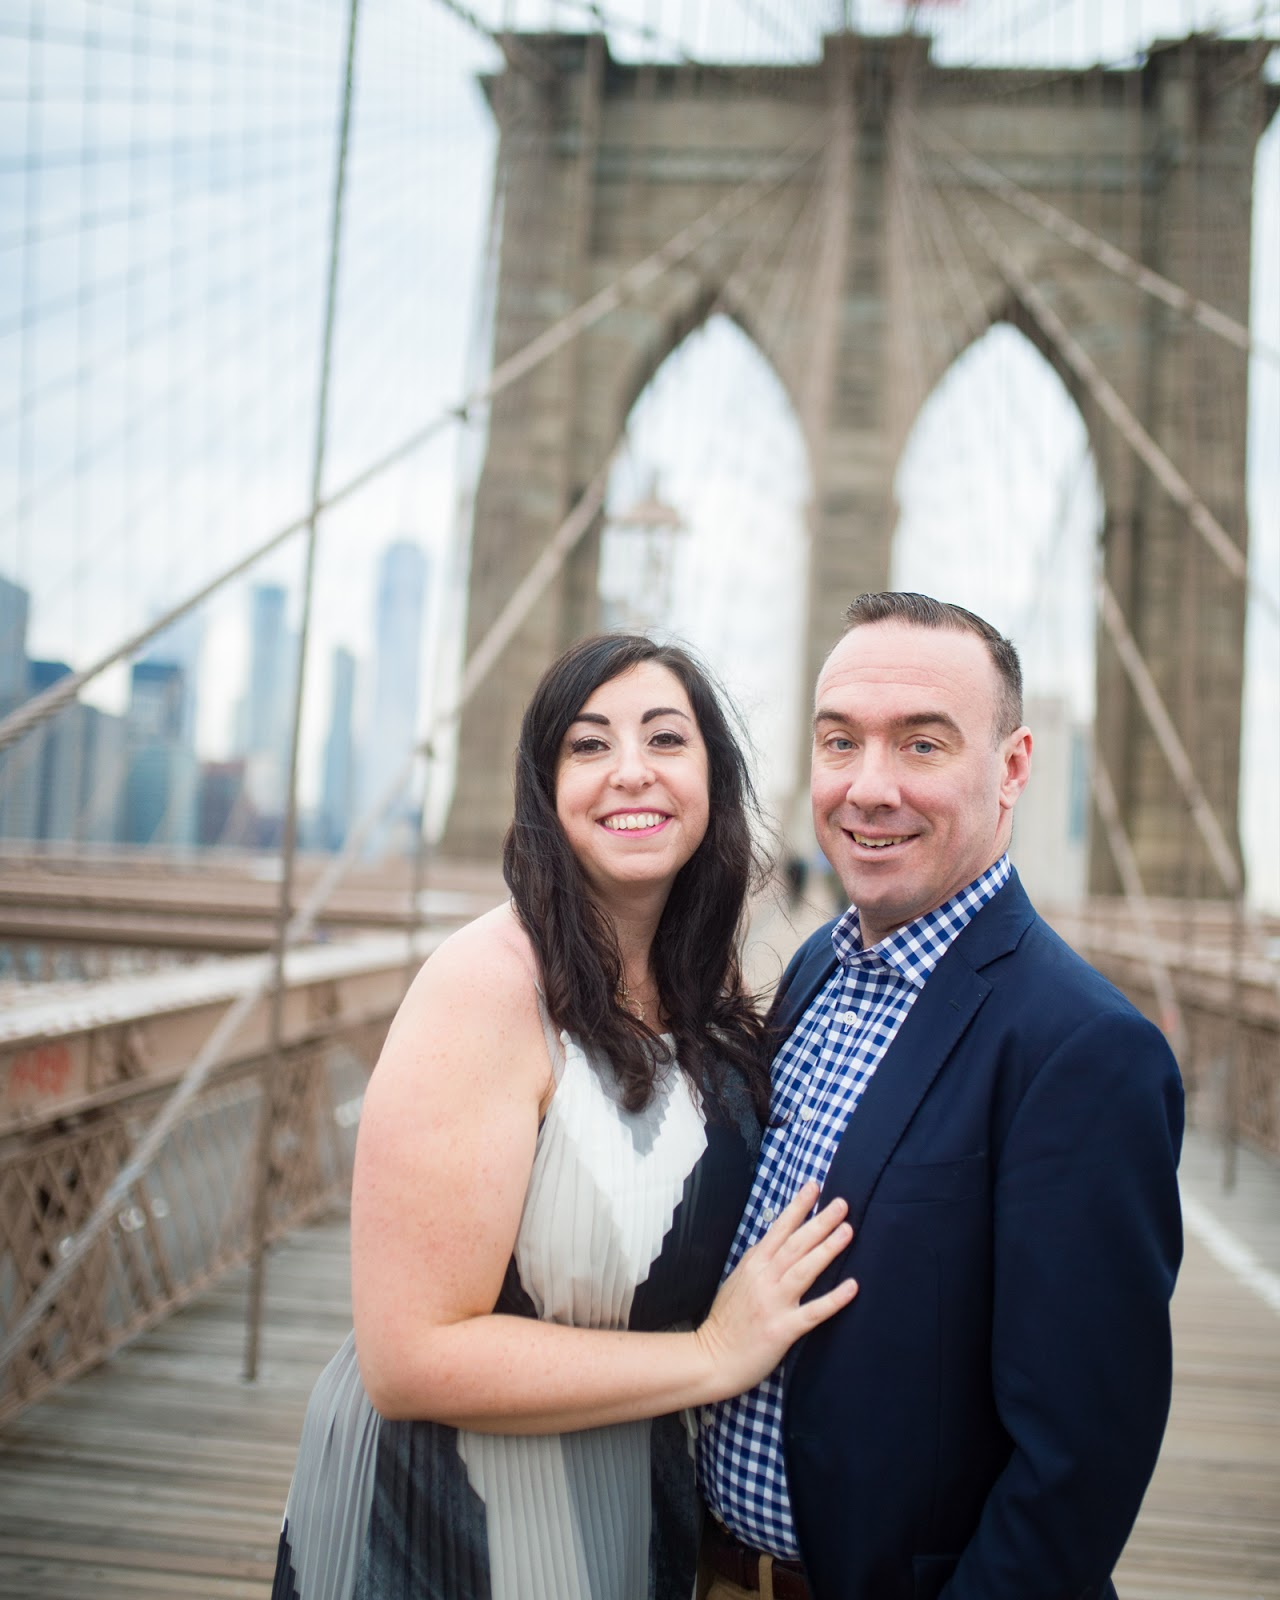 Wedding Wednesday Series :: Post 1 :: Our Engagement Story :: Effortlessly With Roxy